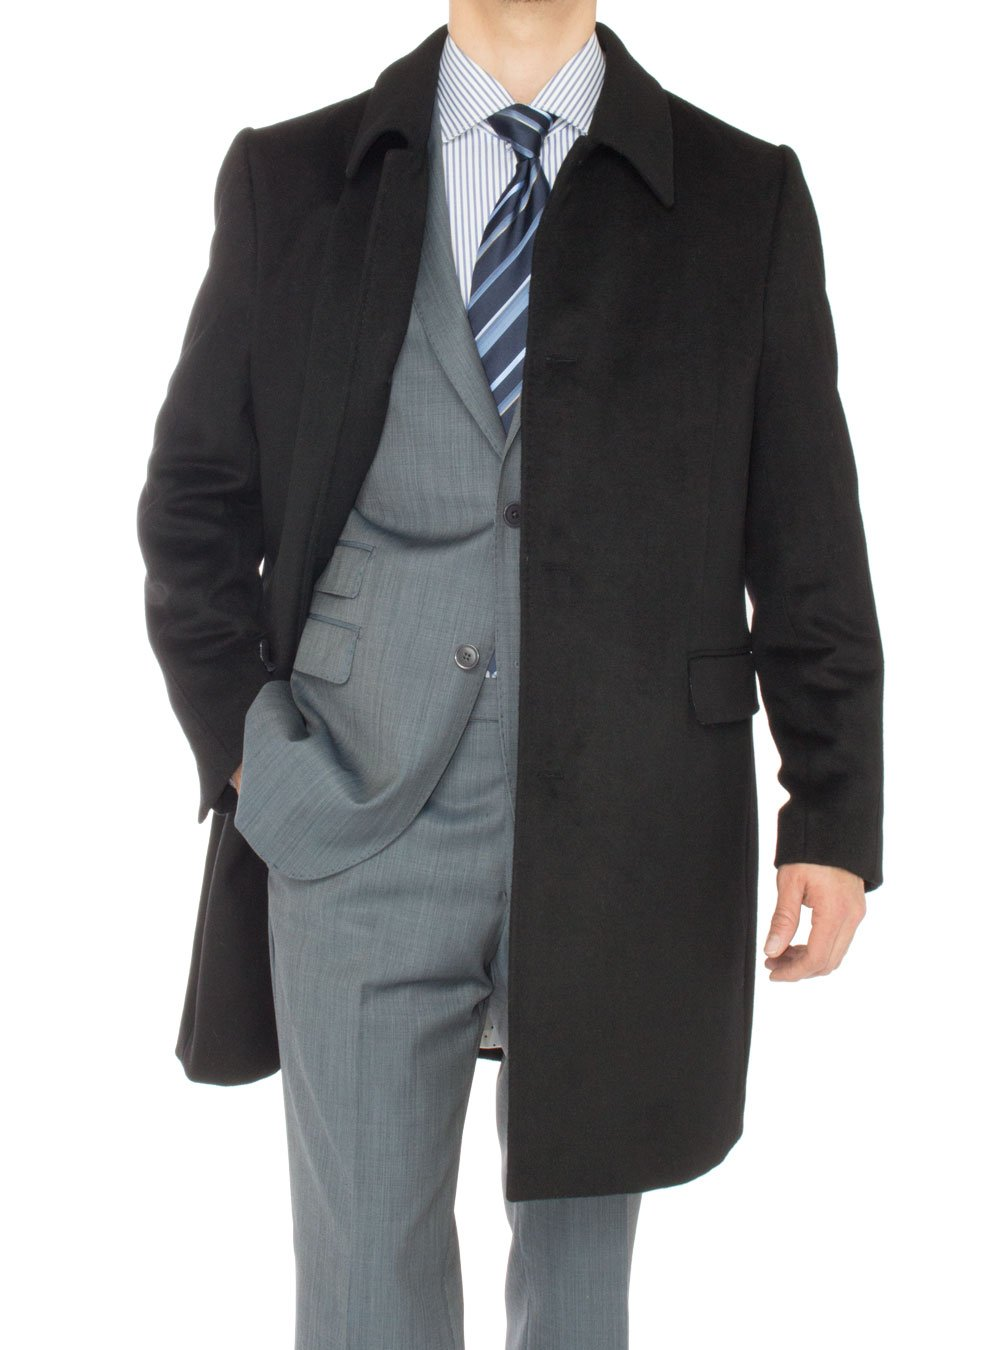 Luciano Natazzi Men's Cashmere Topcoat Classic Knee Length Trench Coat Overcoat (36 US - 46 EU, Black) by Luciano Natazzi